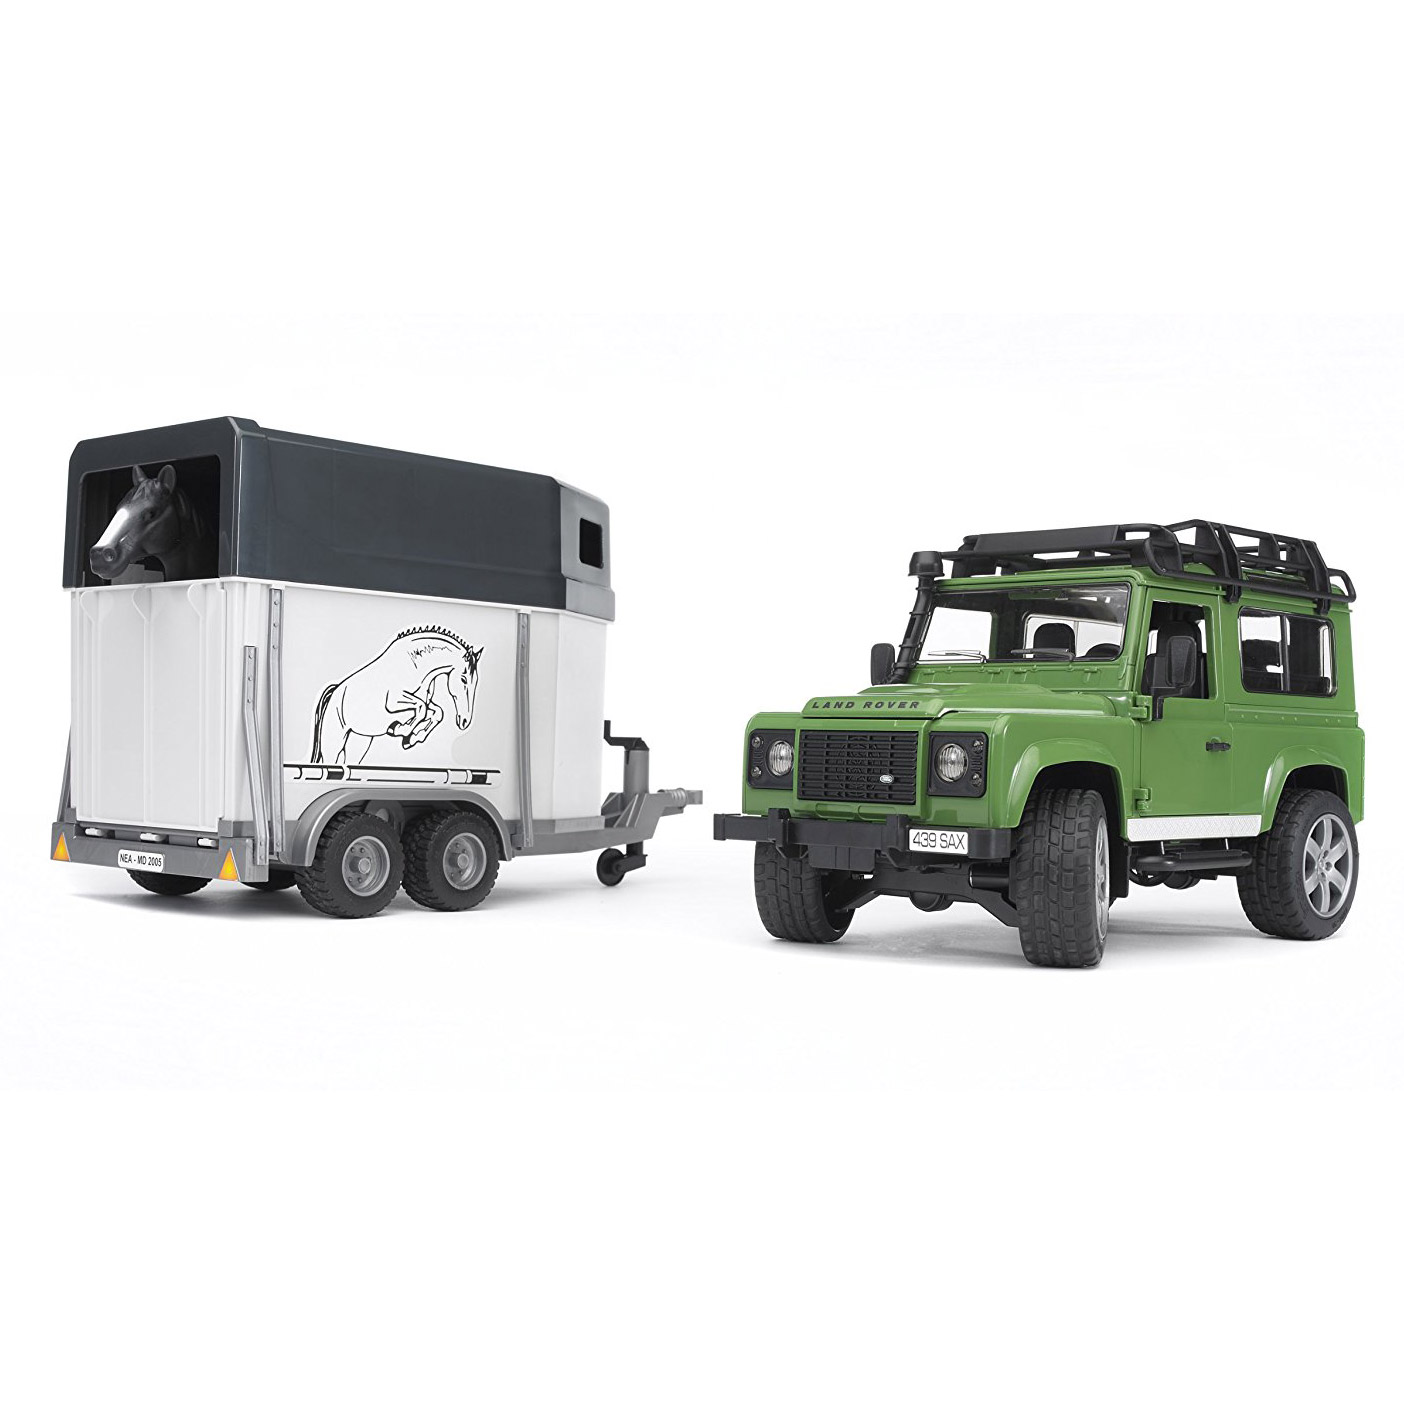 Bruder Toys Land Rover Defender Station Wagon with Horse Trailer and Black Horse